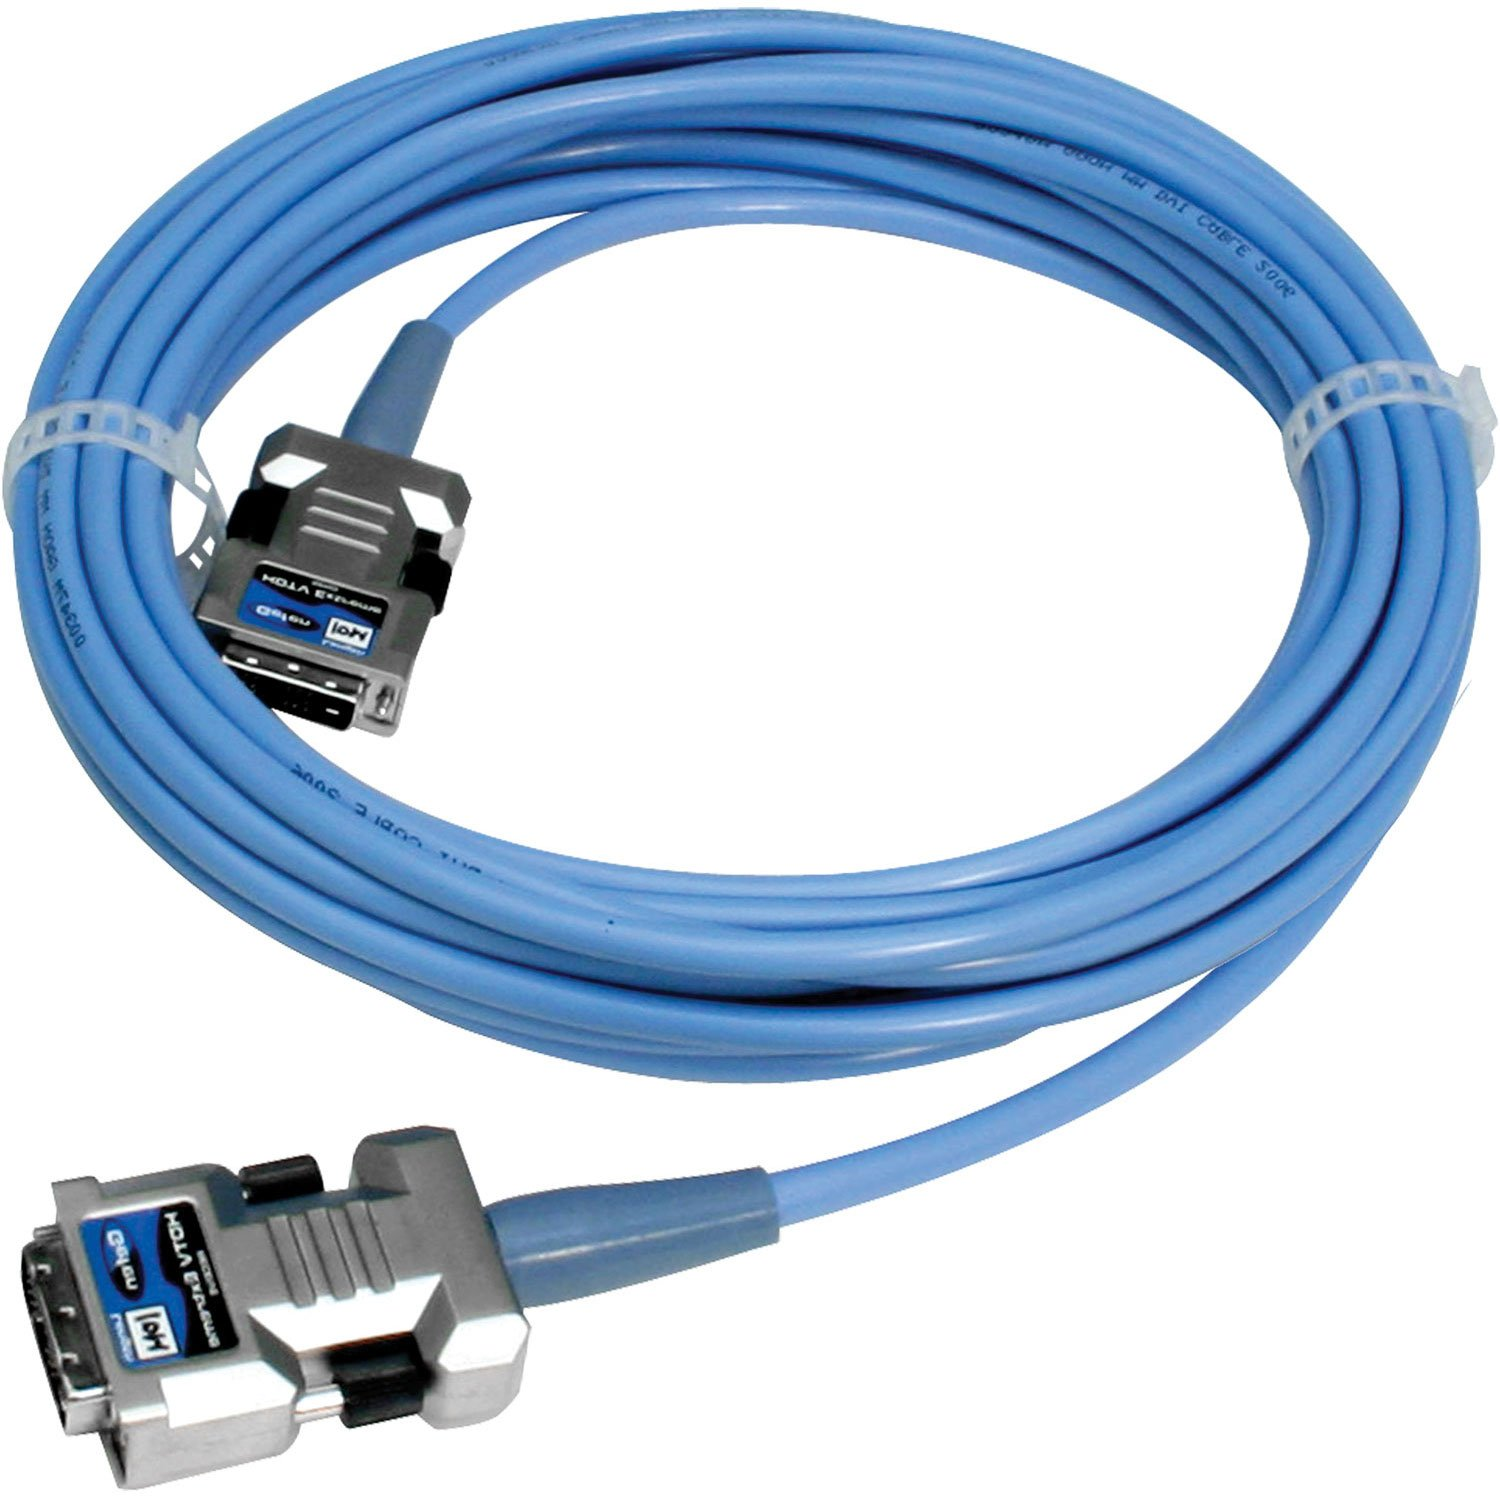 HDTV DVI-D Fiber Optic Cable (M-M) (50 feet)